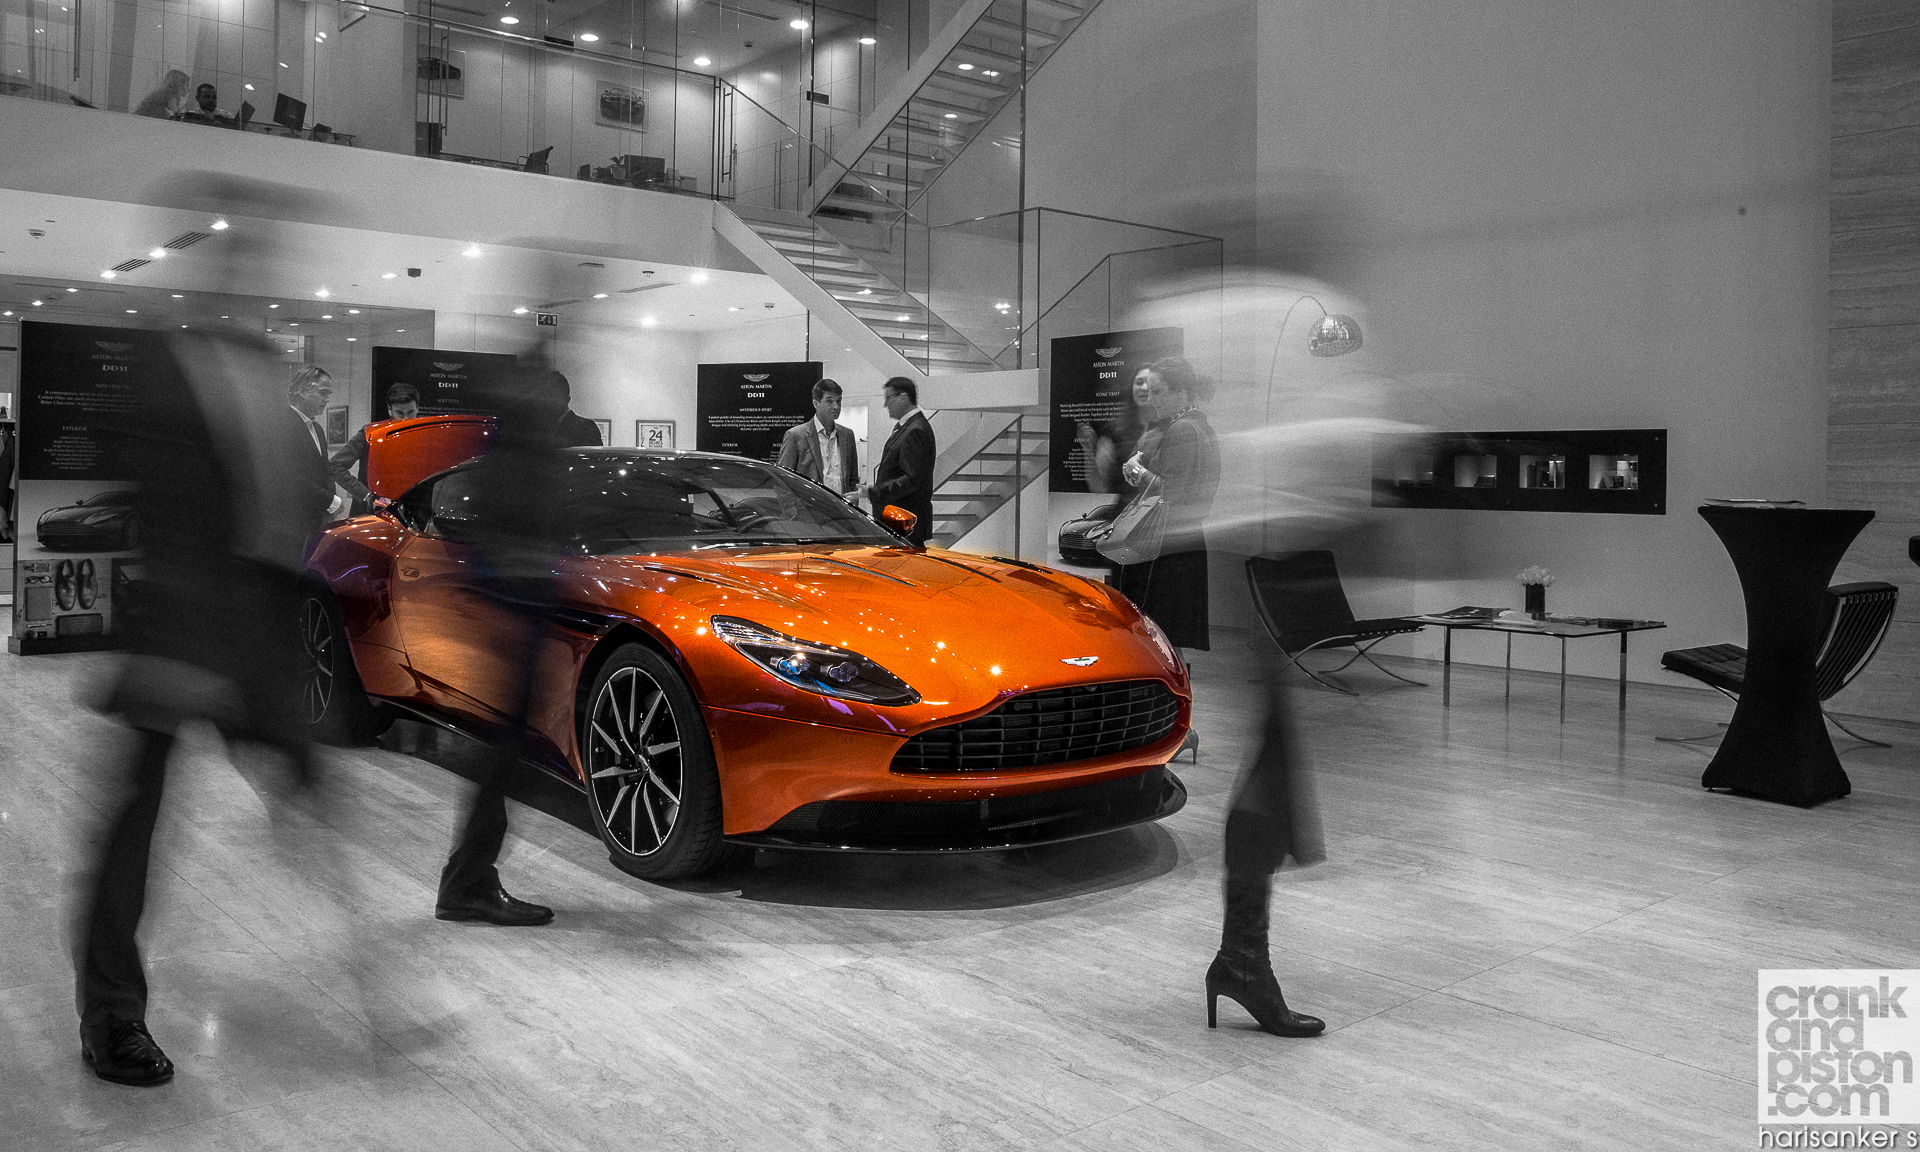 Aston Martin DB11 Unveil WALLPAPERS crankandpiston-4